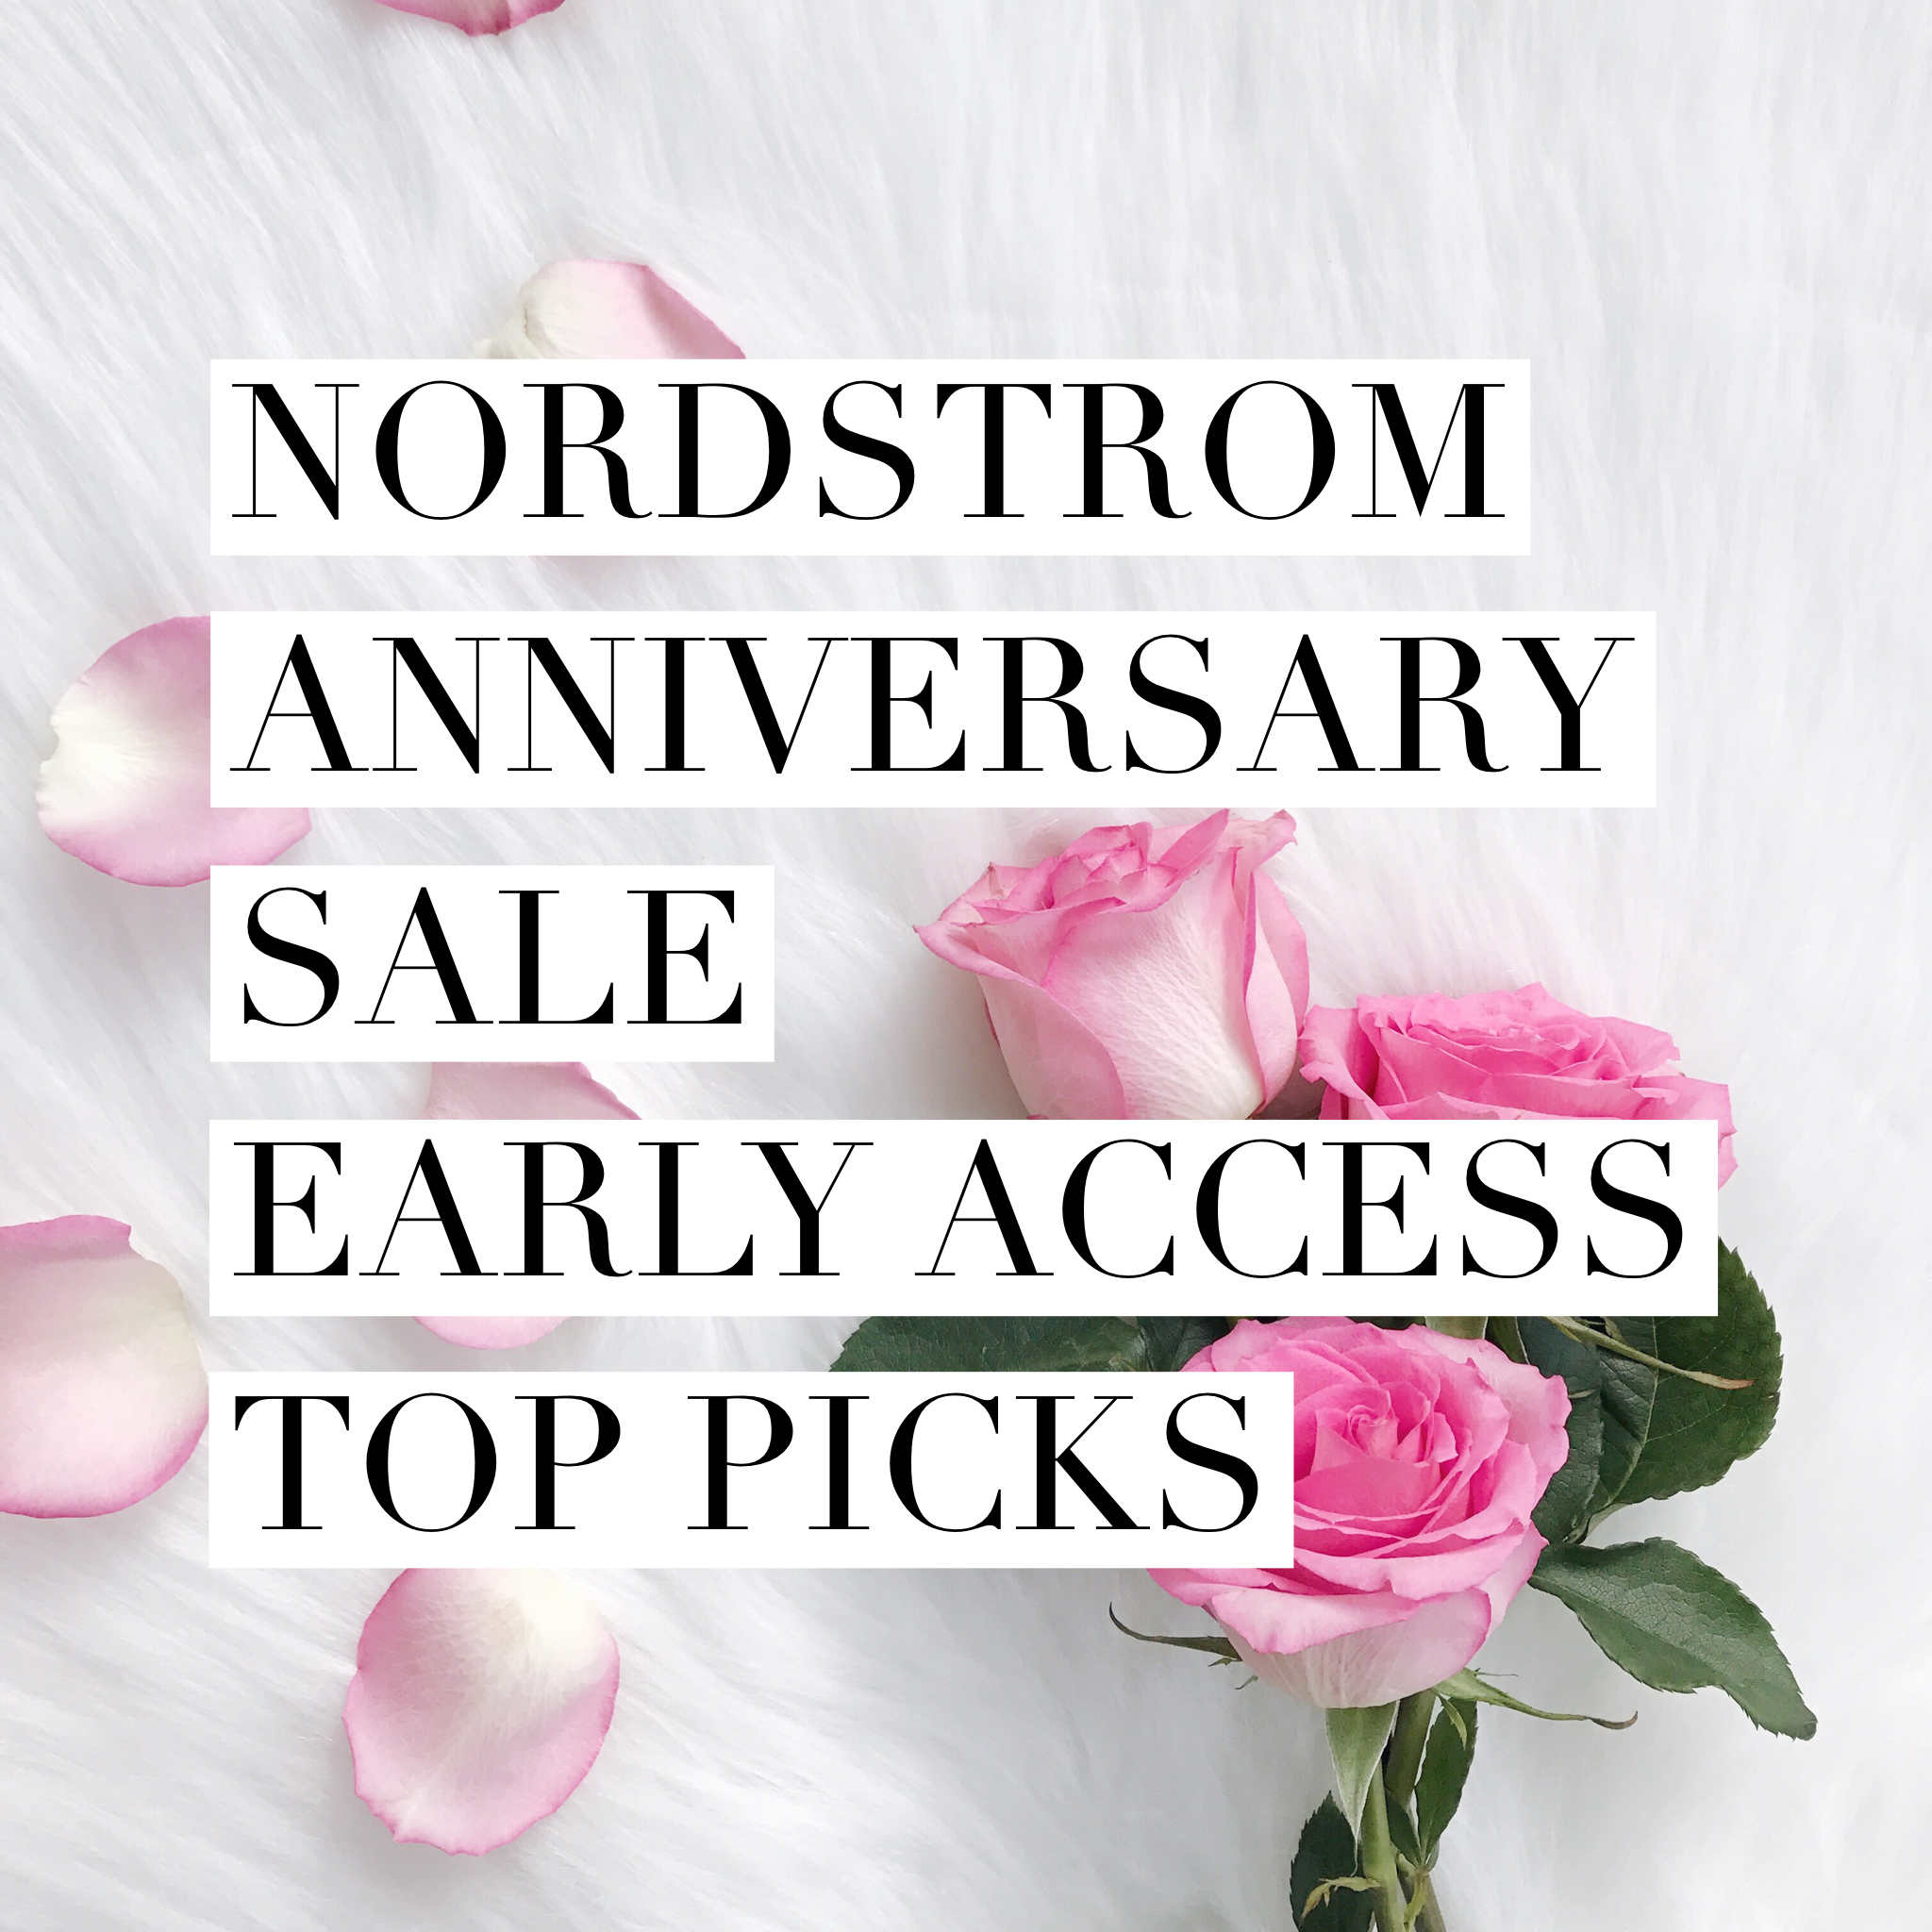 nordstrom anniversary sale 2017, Nordstrom sale early access, Nordstrom top picks